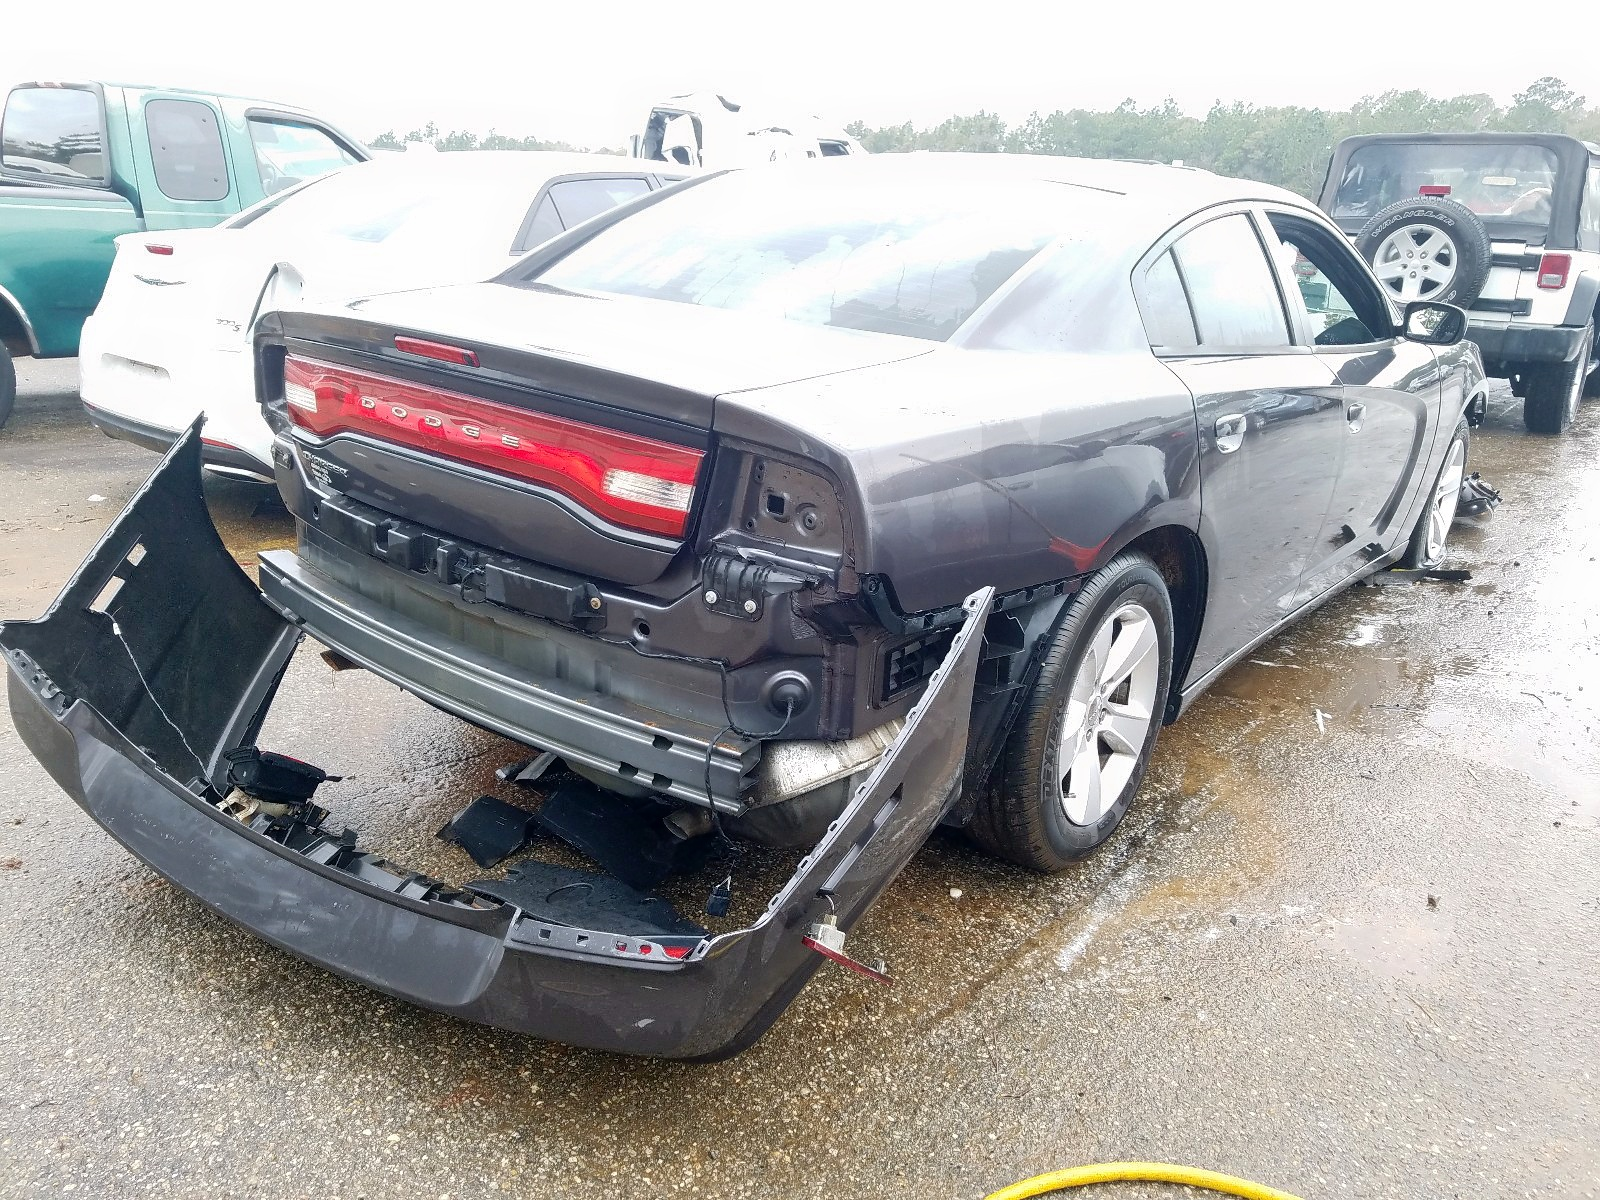 2C3CDXBG7EH130837 - 2014 Dodge Charger Se 3.6L rear view